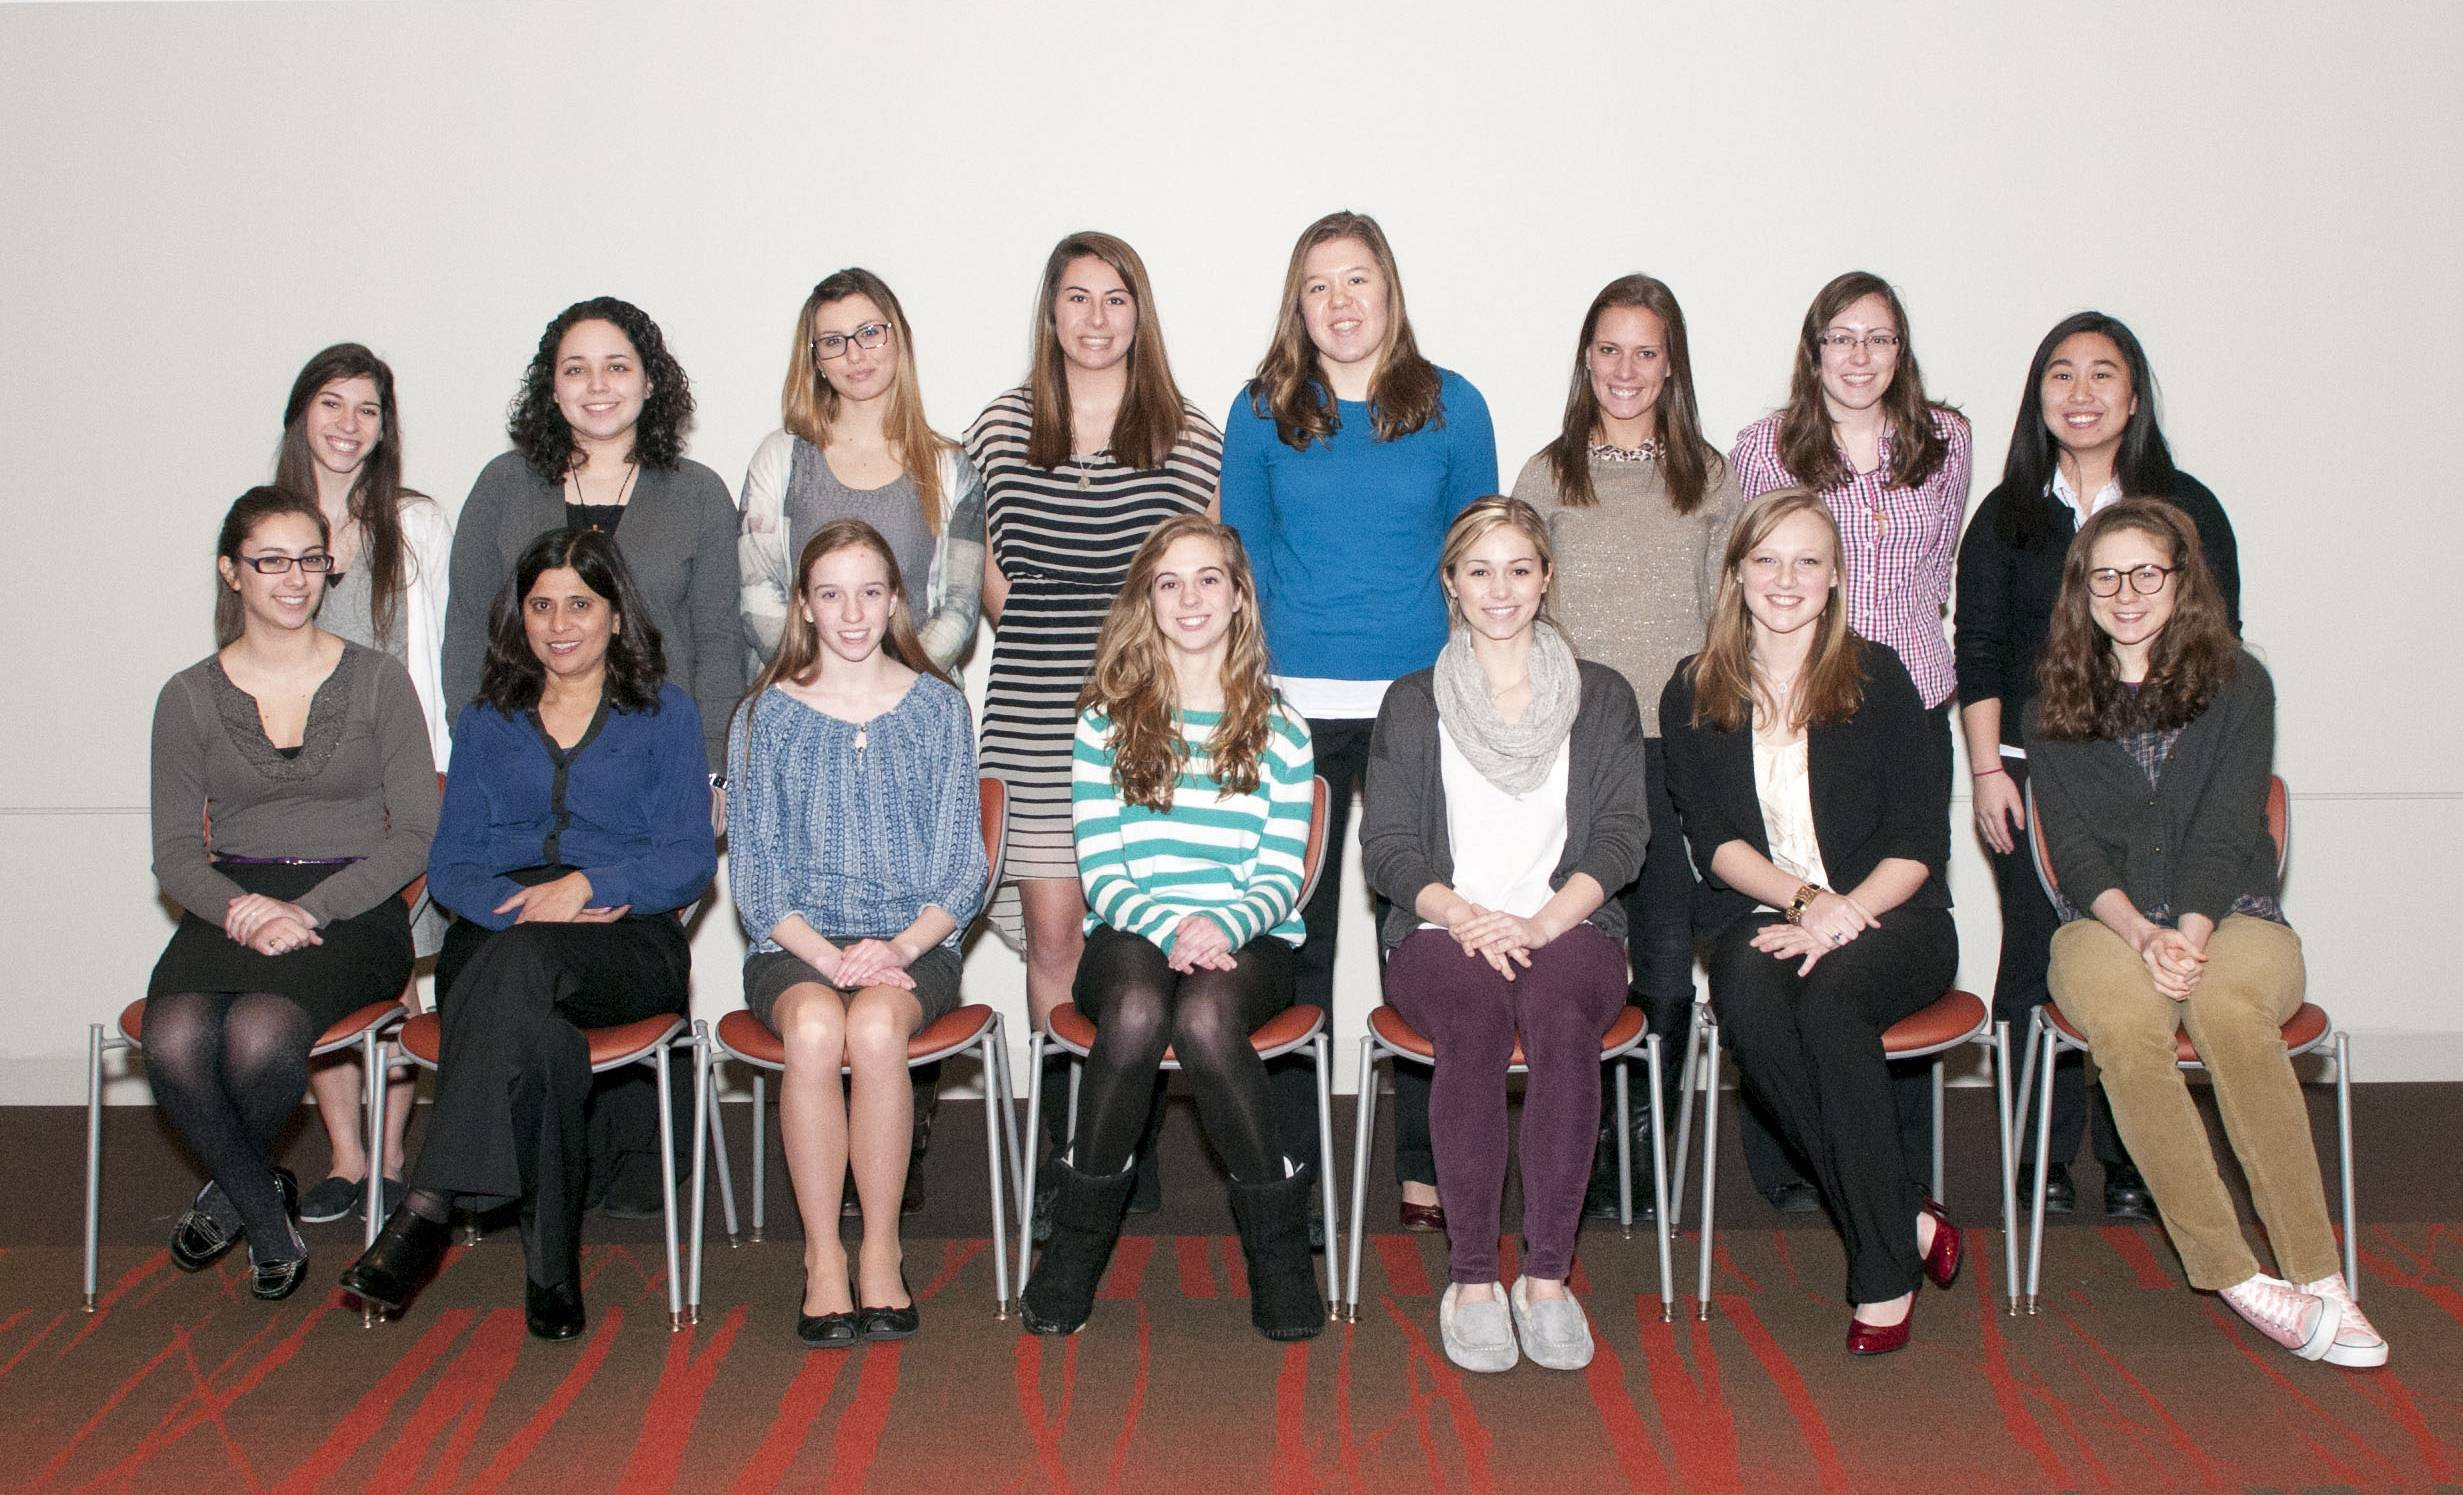 Rosary High School's WYSE Team: (front row, from left) Amalia Mercado, coach Ms. Falguni Soni, Anna Ward, Teresa Zidek, Taylor Vandenberg, Becky Fritz, Tess Fitzsimmons. (Back row, from left) Courtney Cox, Aimee Arvayo, Jesika Barmanbek, Allie Bennett, Amy Seraphin, Molly Piech, Colleen Madlinger, Celine Italia.